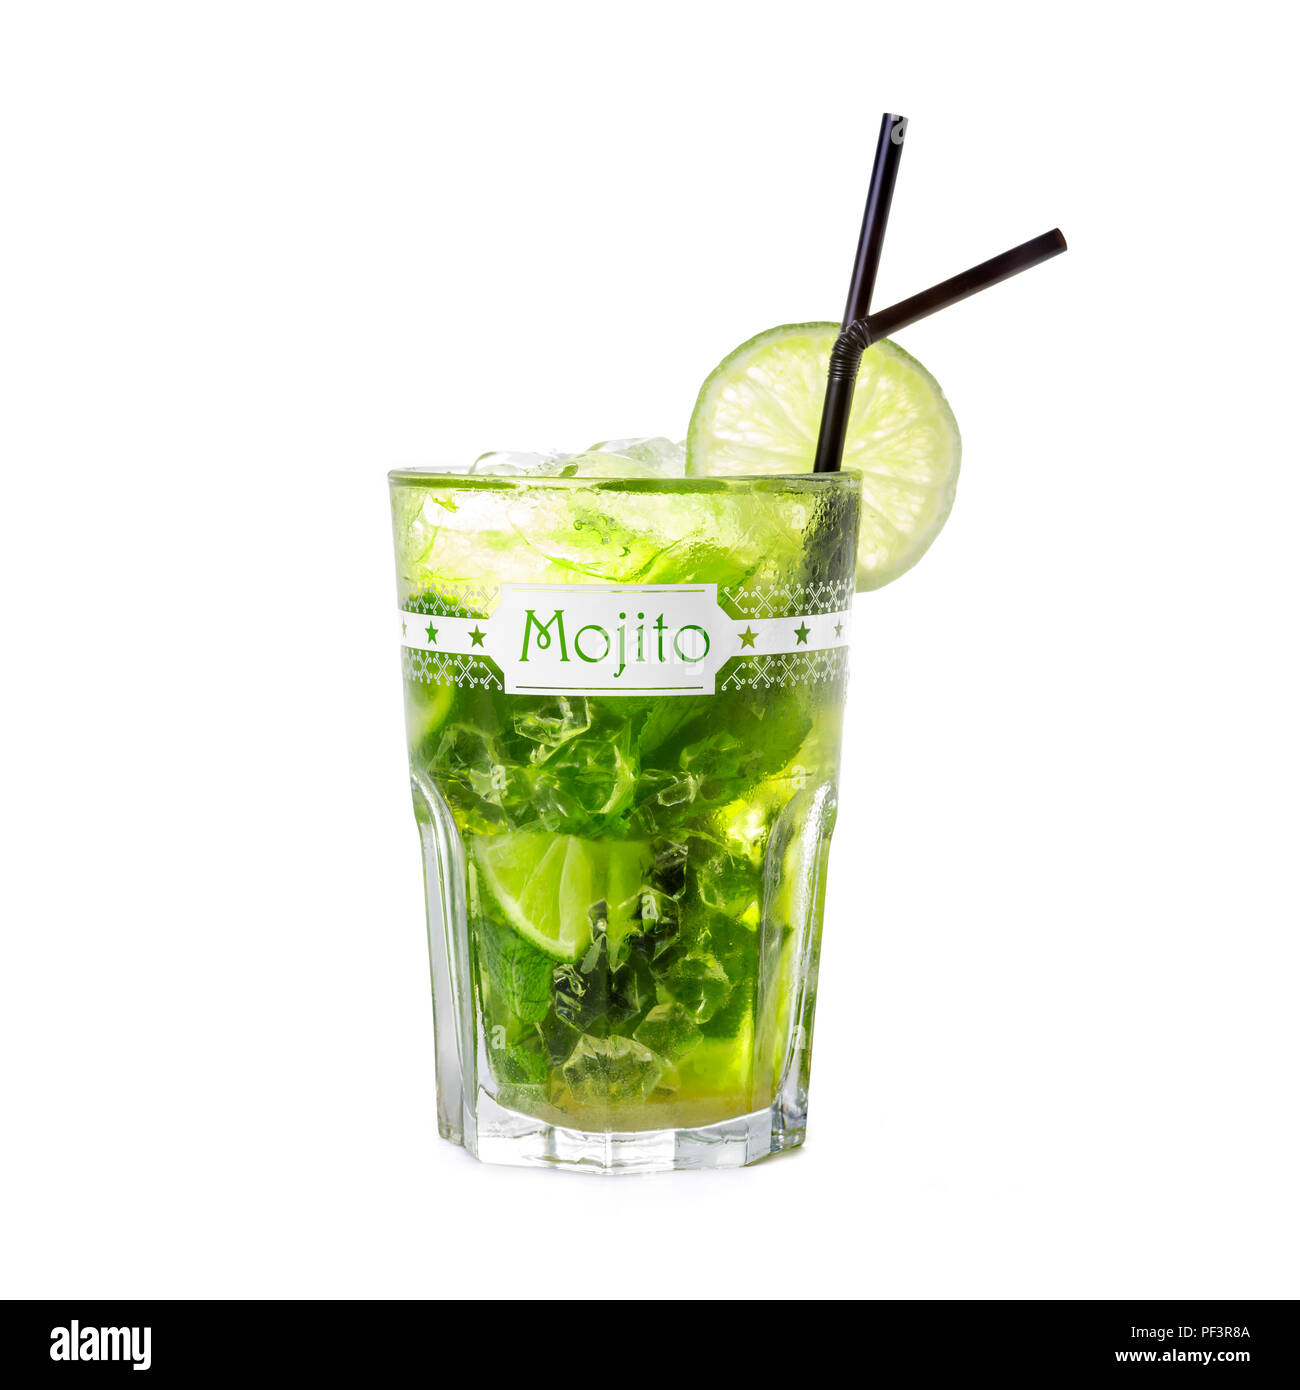 A Mojito cocktail photographed on a white background. It is a very refreshing drink for hot summer days. - Stock Image